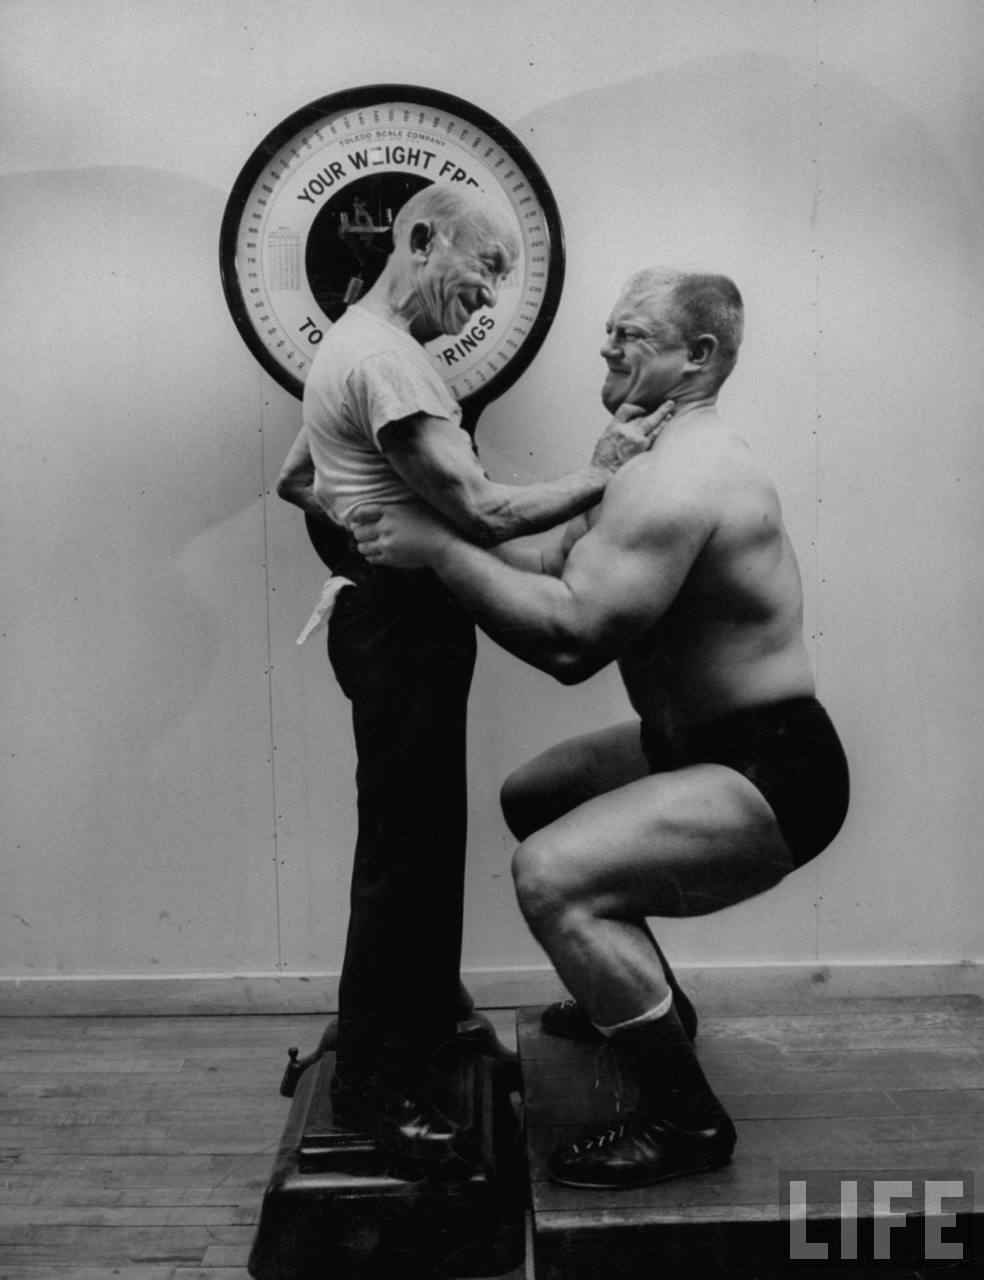 Westler Dick Afflis (R) failing in attempt to lift Johnny Coulon, the unliftable man, from scale.